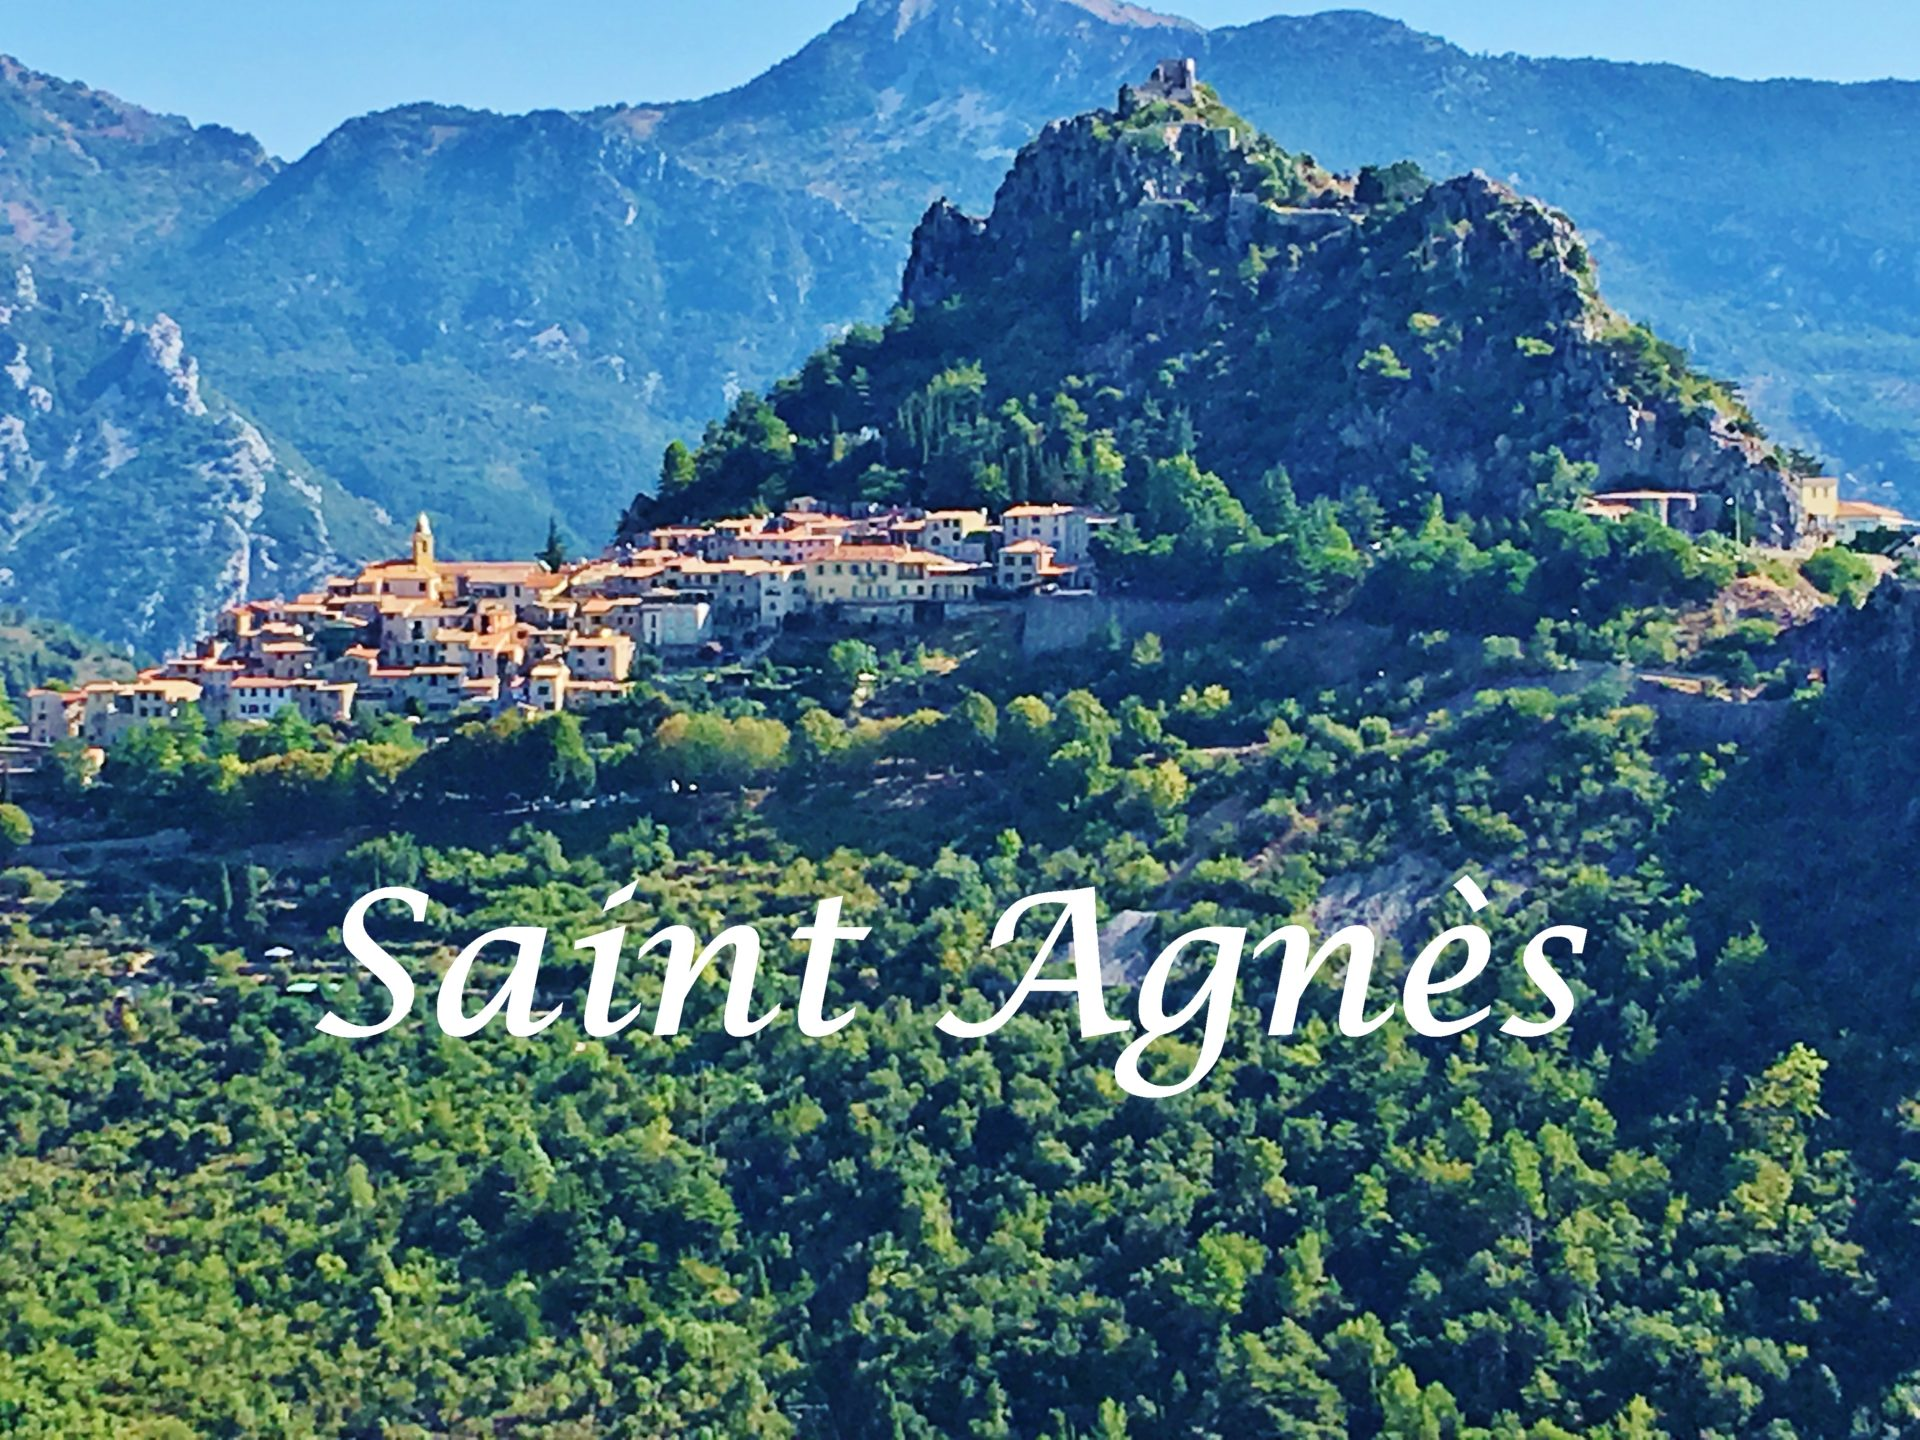 Sainte Agnès en photo - Dreams World - Blog voyage